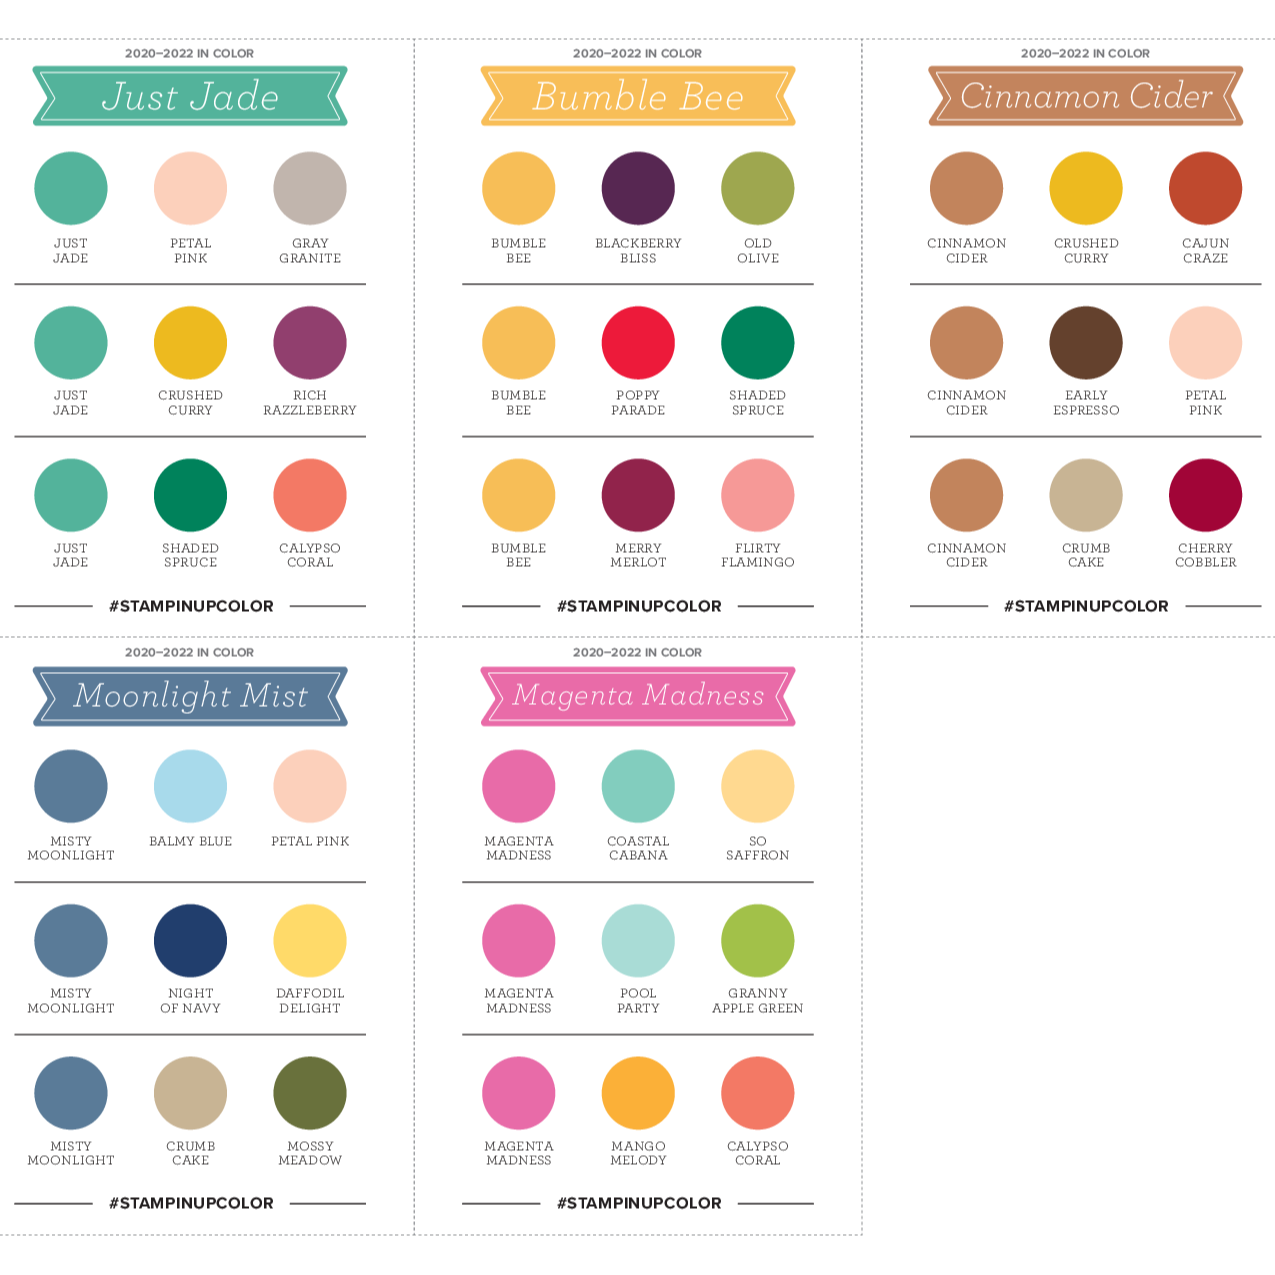 SHOP FOR THE #INCOLOR 2020-2022 SWATCHES